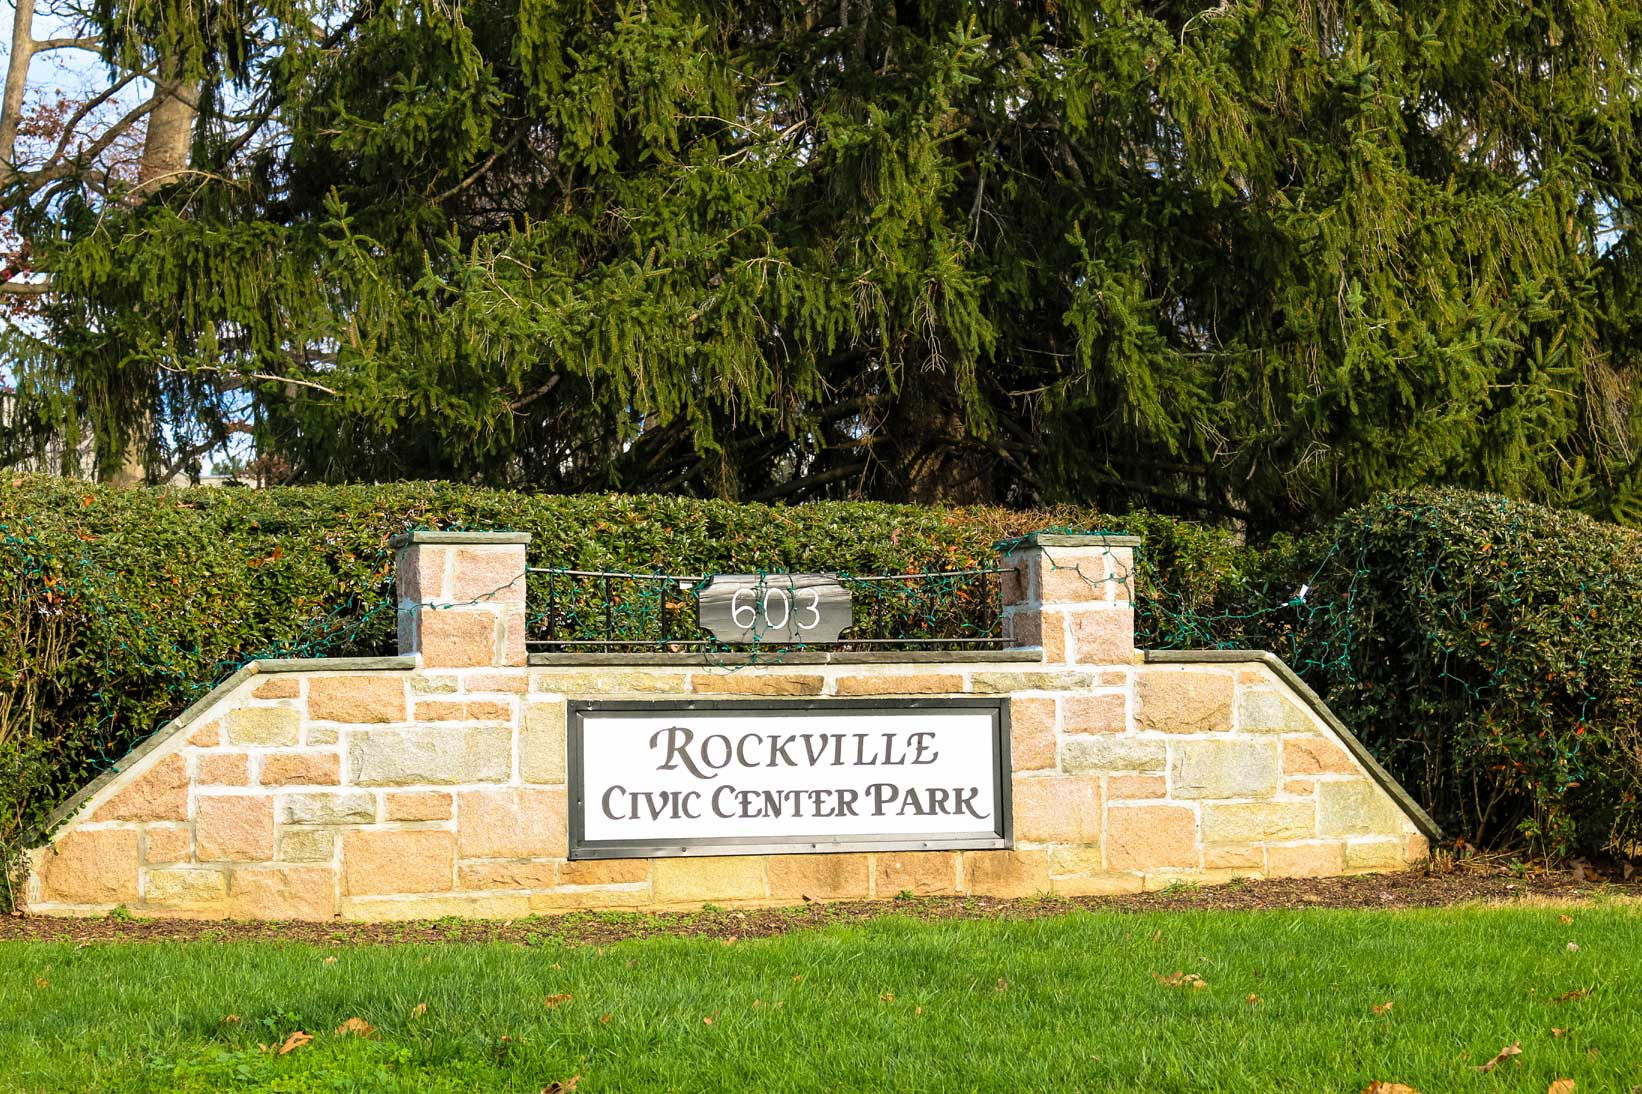 Rockville Civic Center Park in Rockville, MD